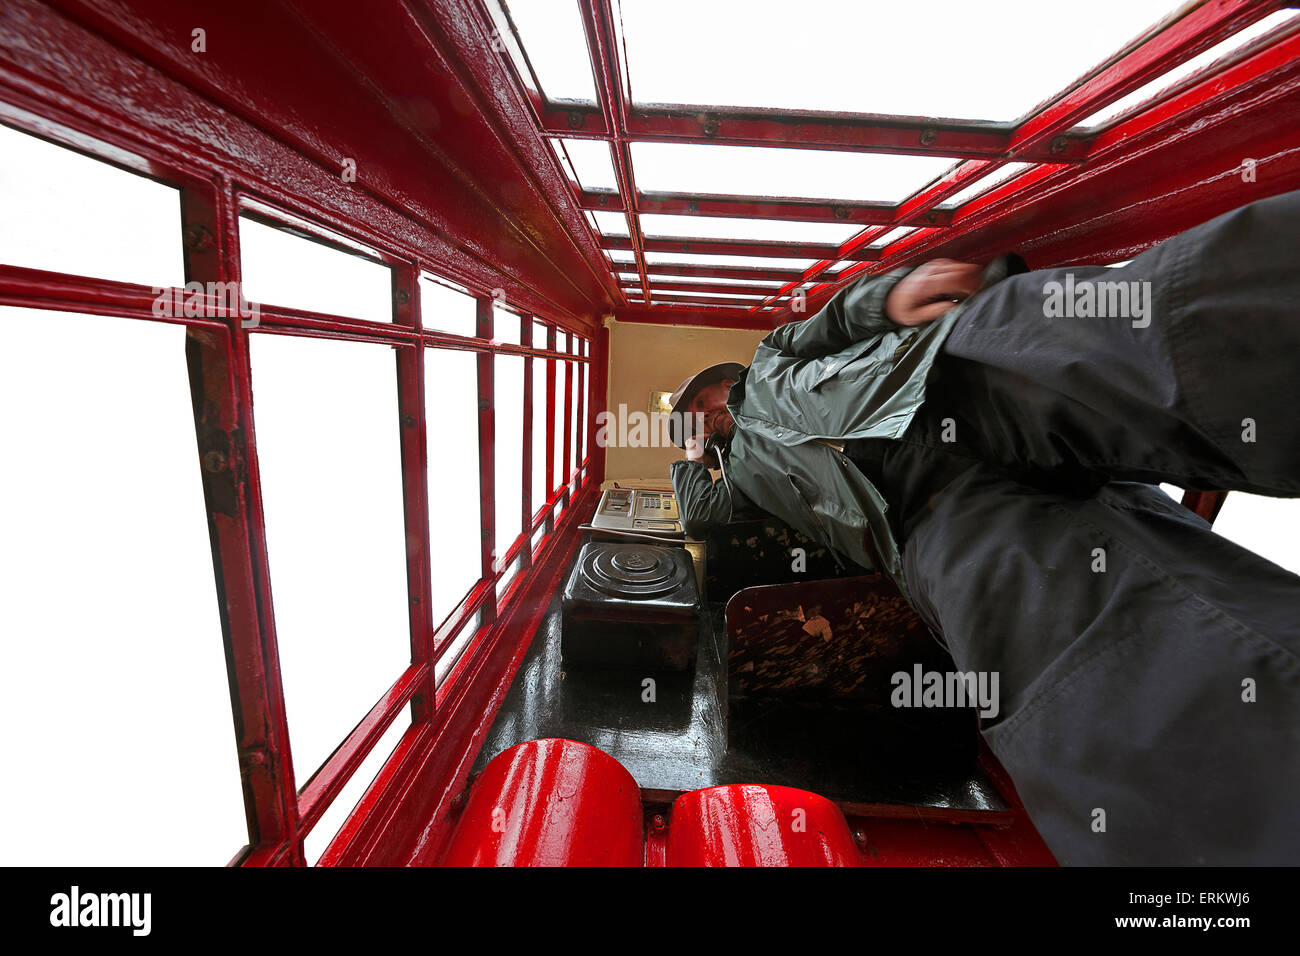 Man inside red  telephone box. - Stock Image